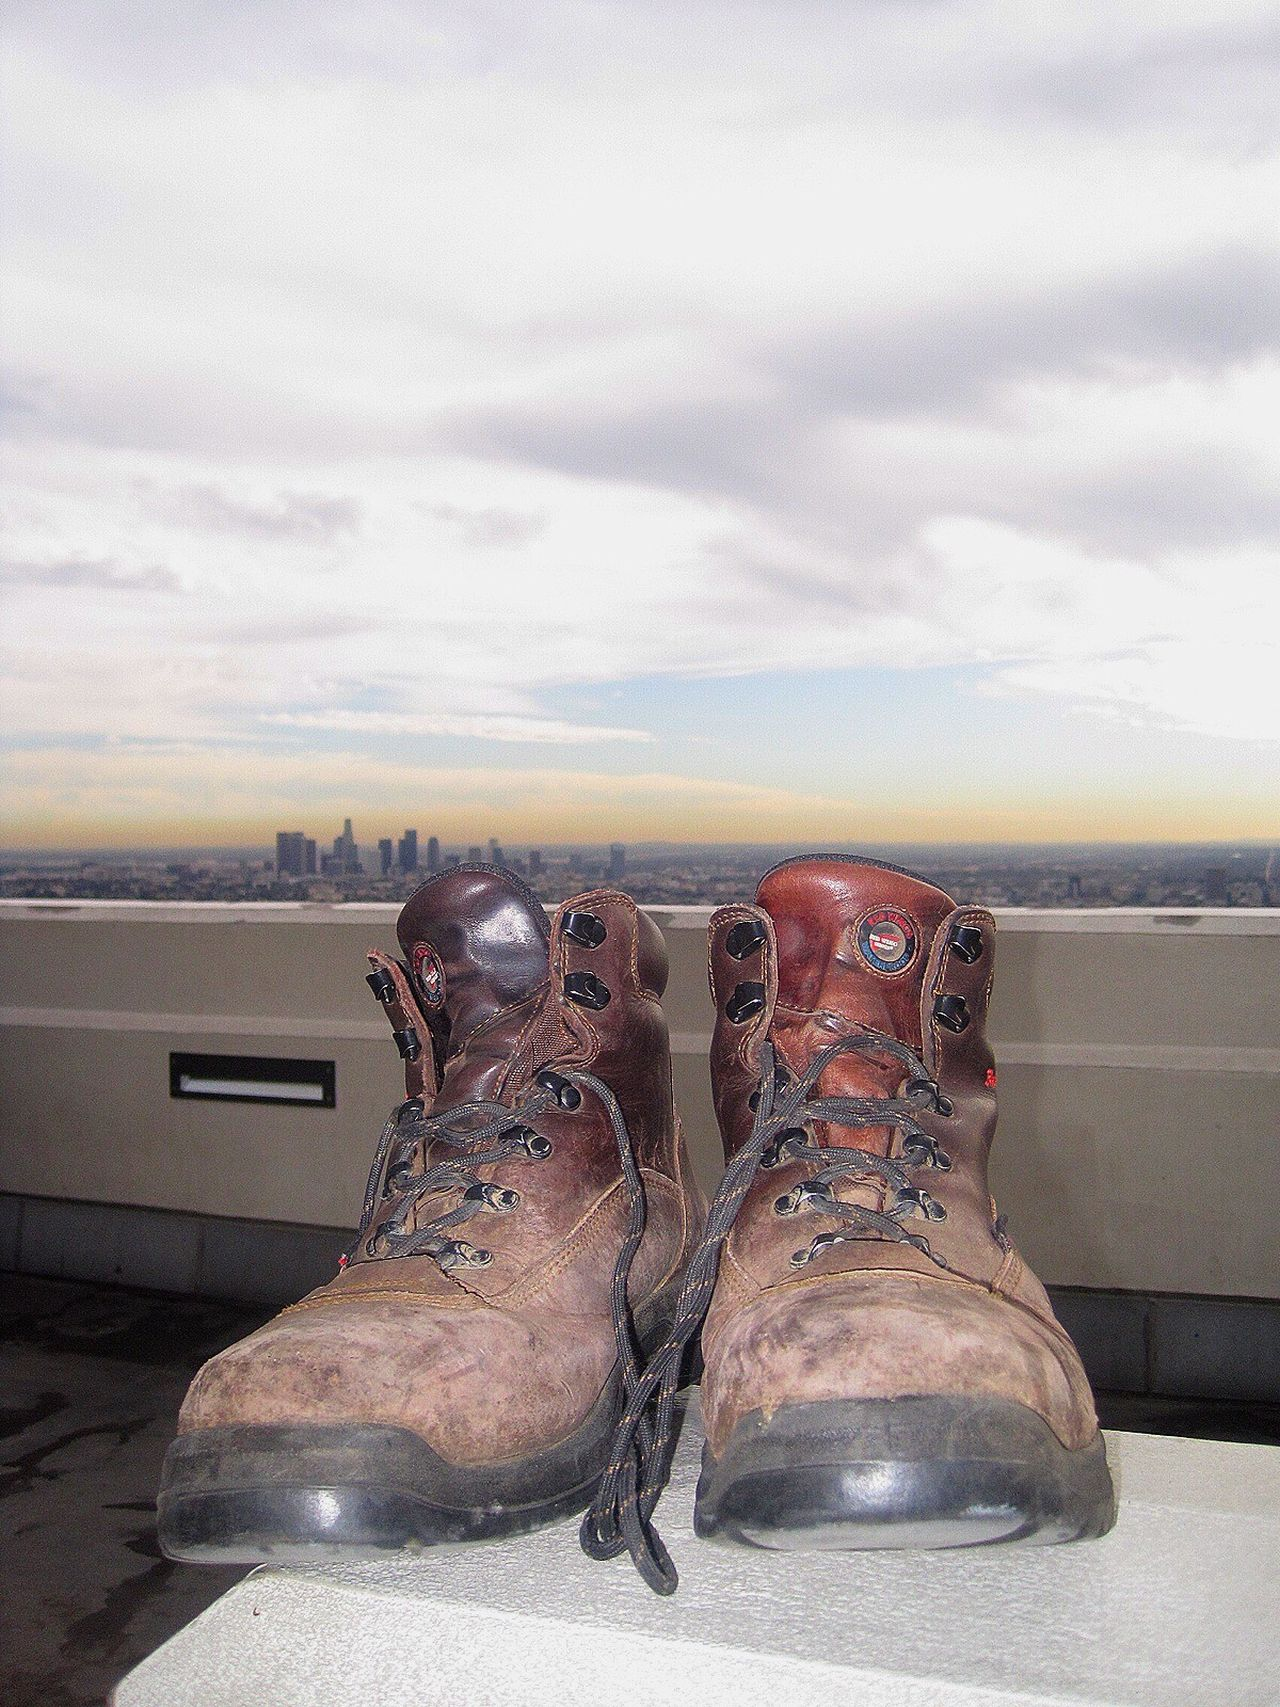 Adapted To The City Shoes Trekking Shoes Travel Old Shoes City View  Urban Skyline Pair Walker Walking Around L.A. Walking Around The City  White Sky